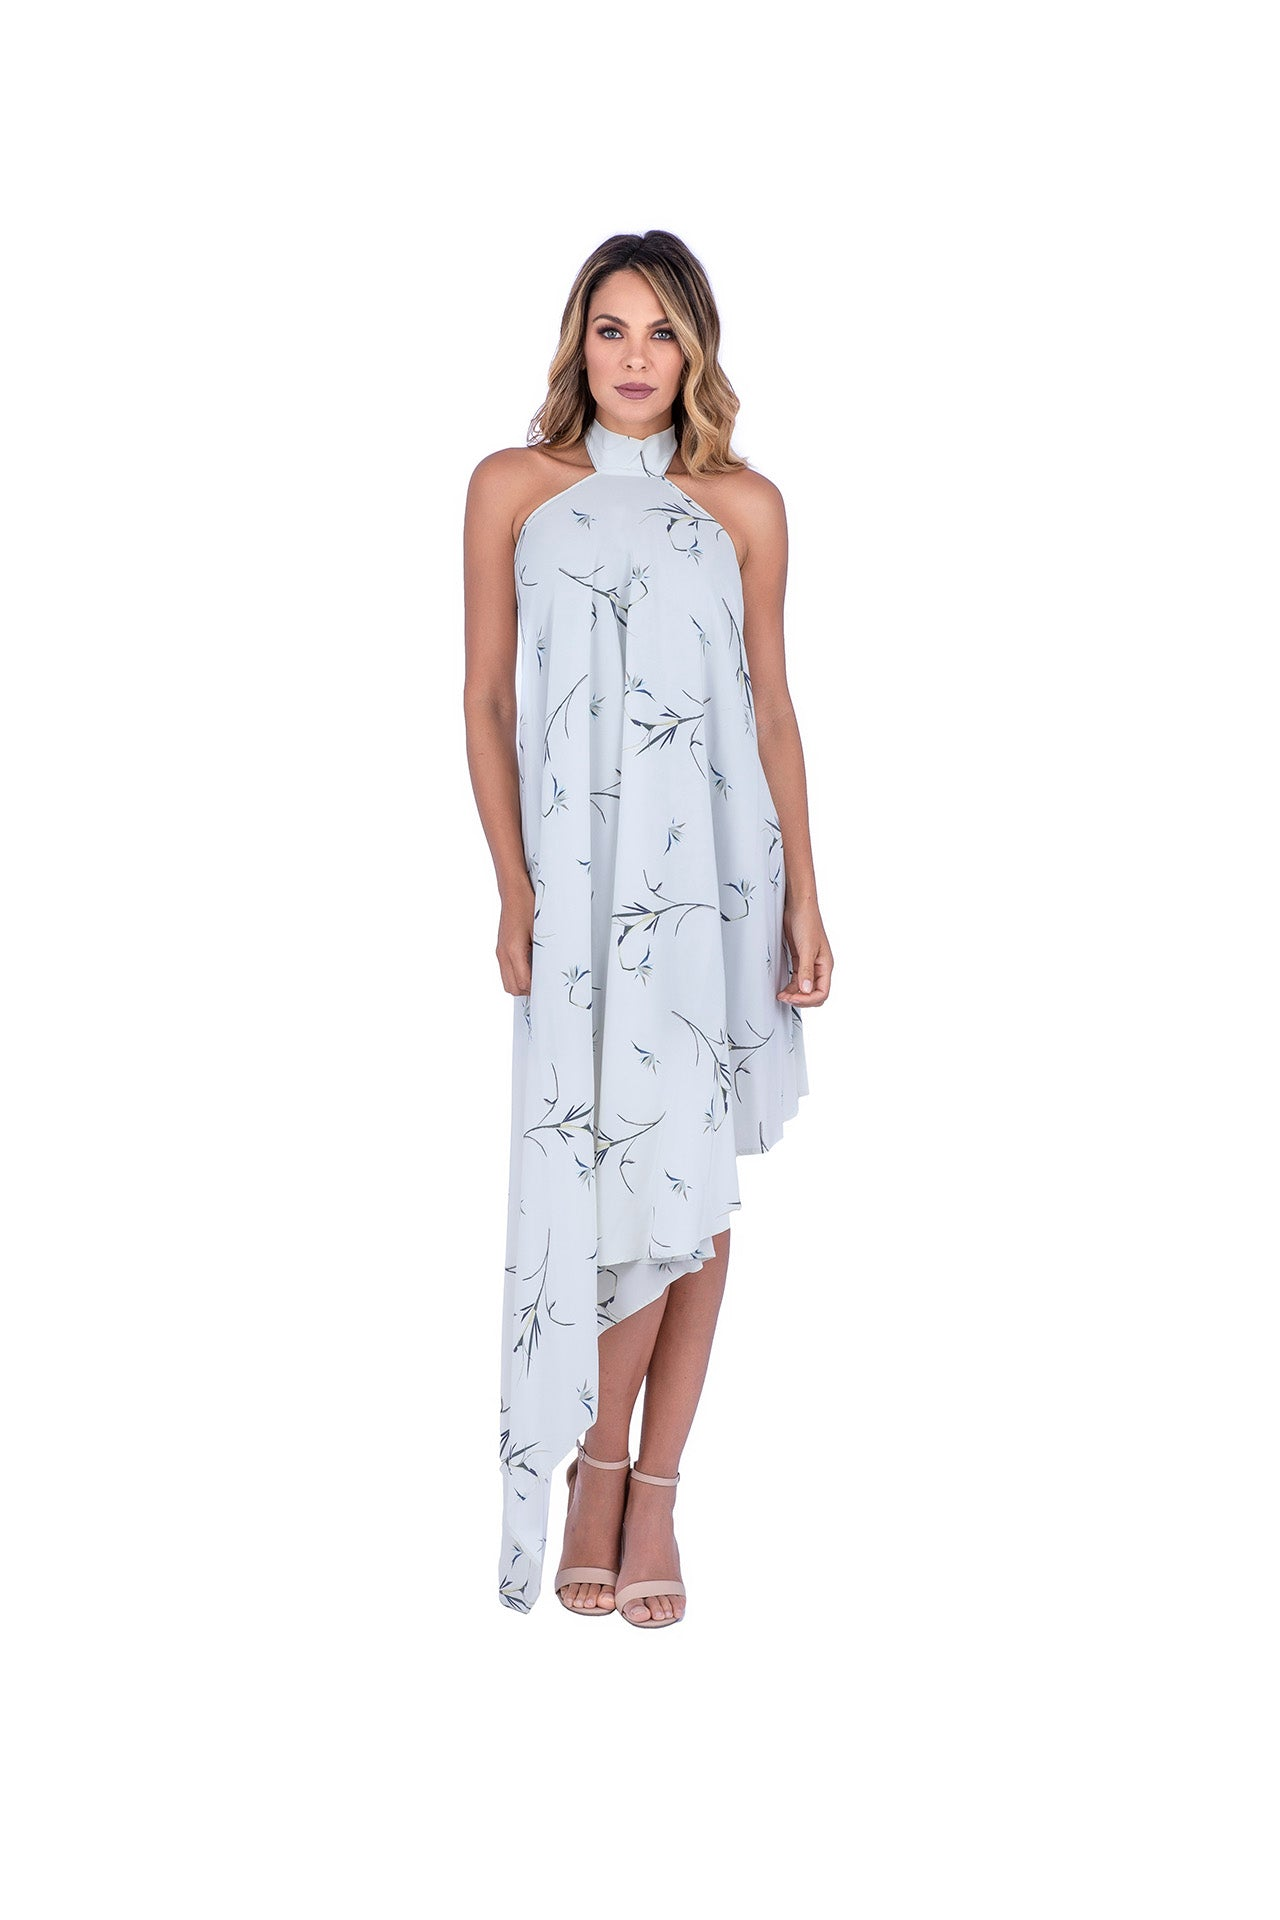 Fresco Silk Dress - Flower Book Print Dresses - artTECA